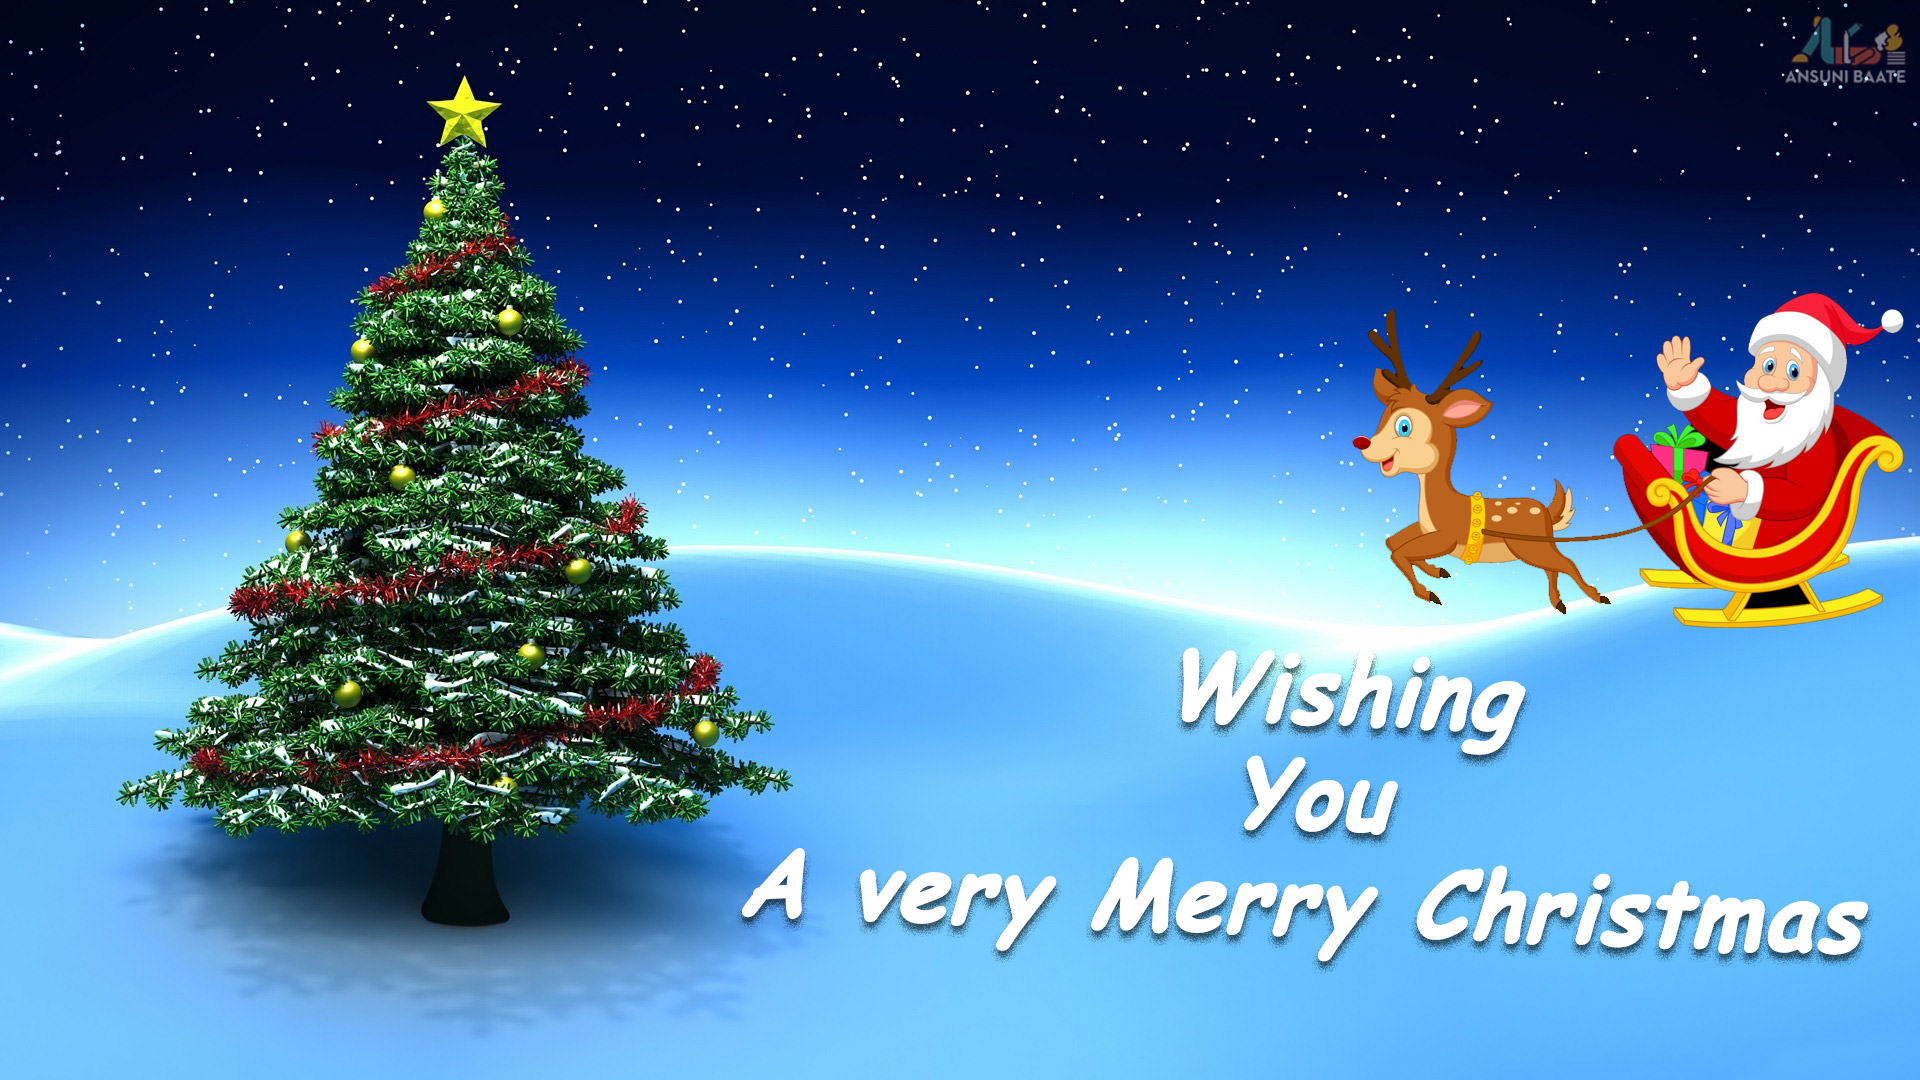 Merry Christmas Wishes Images Photo Gallery - क्रिसमस डे इमेज फोटो